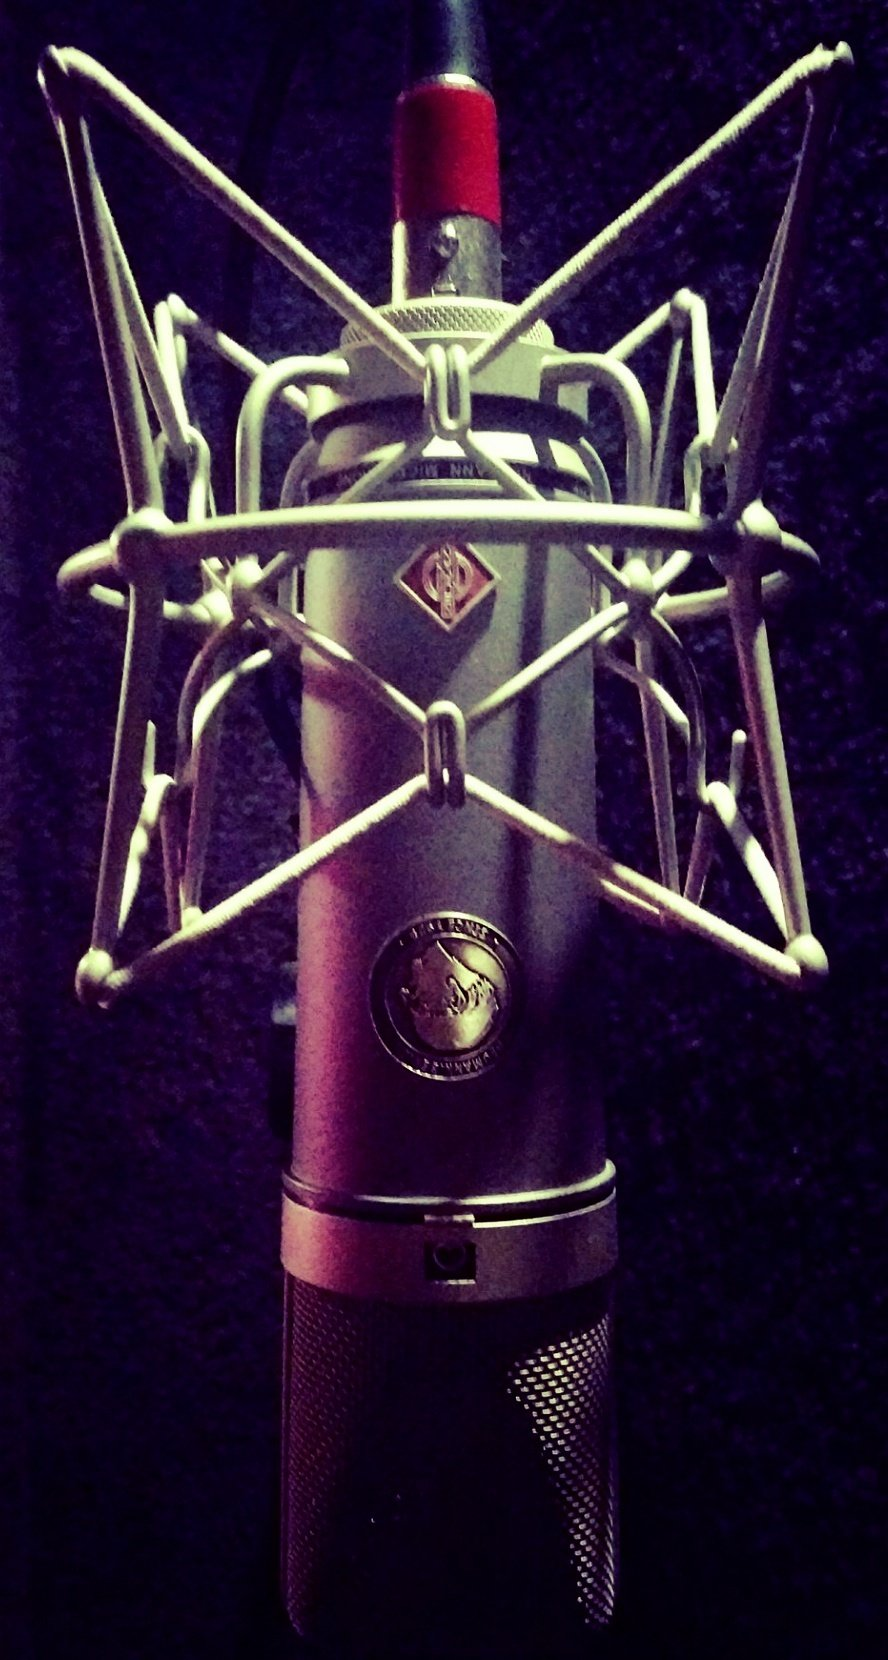 High End Microphones